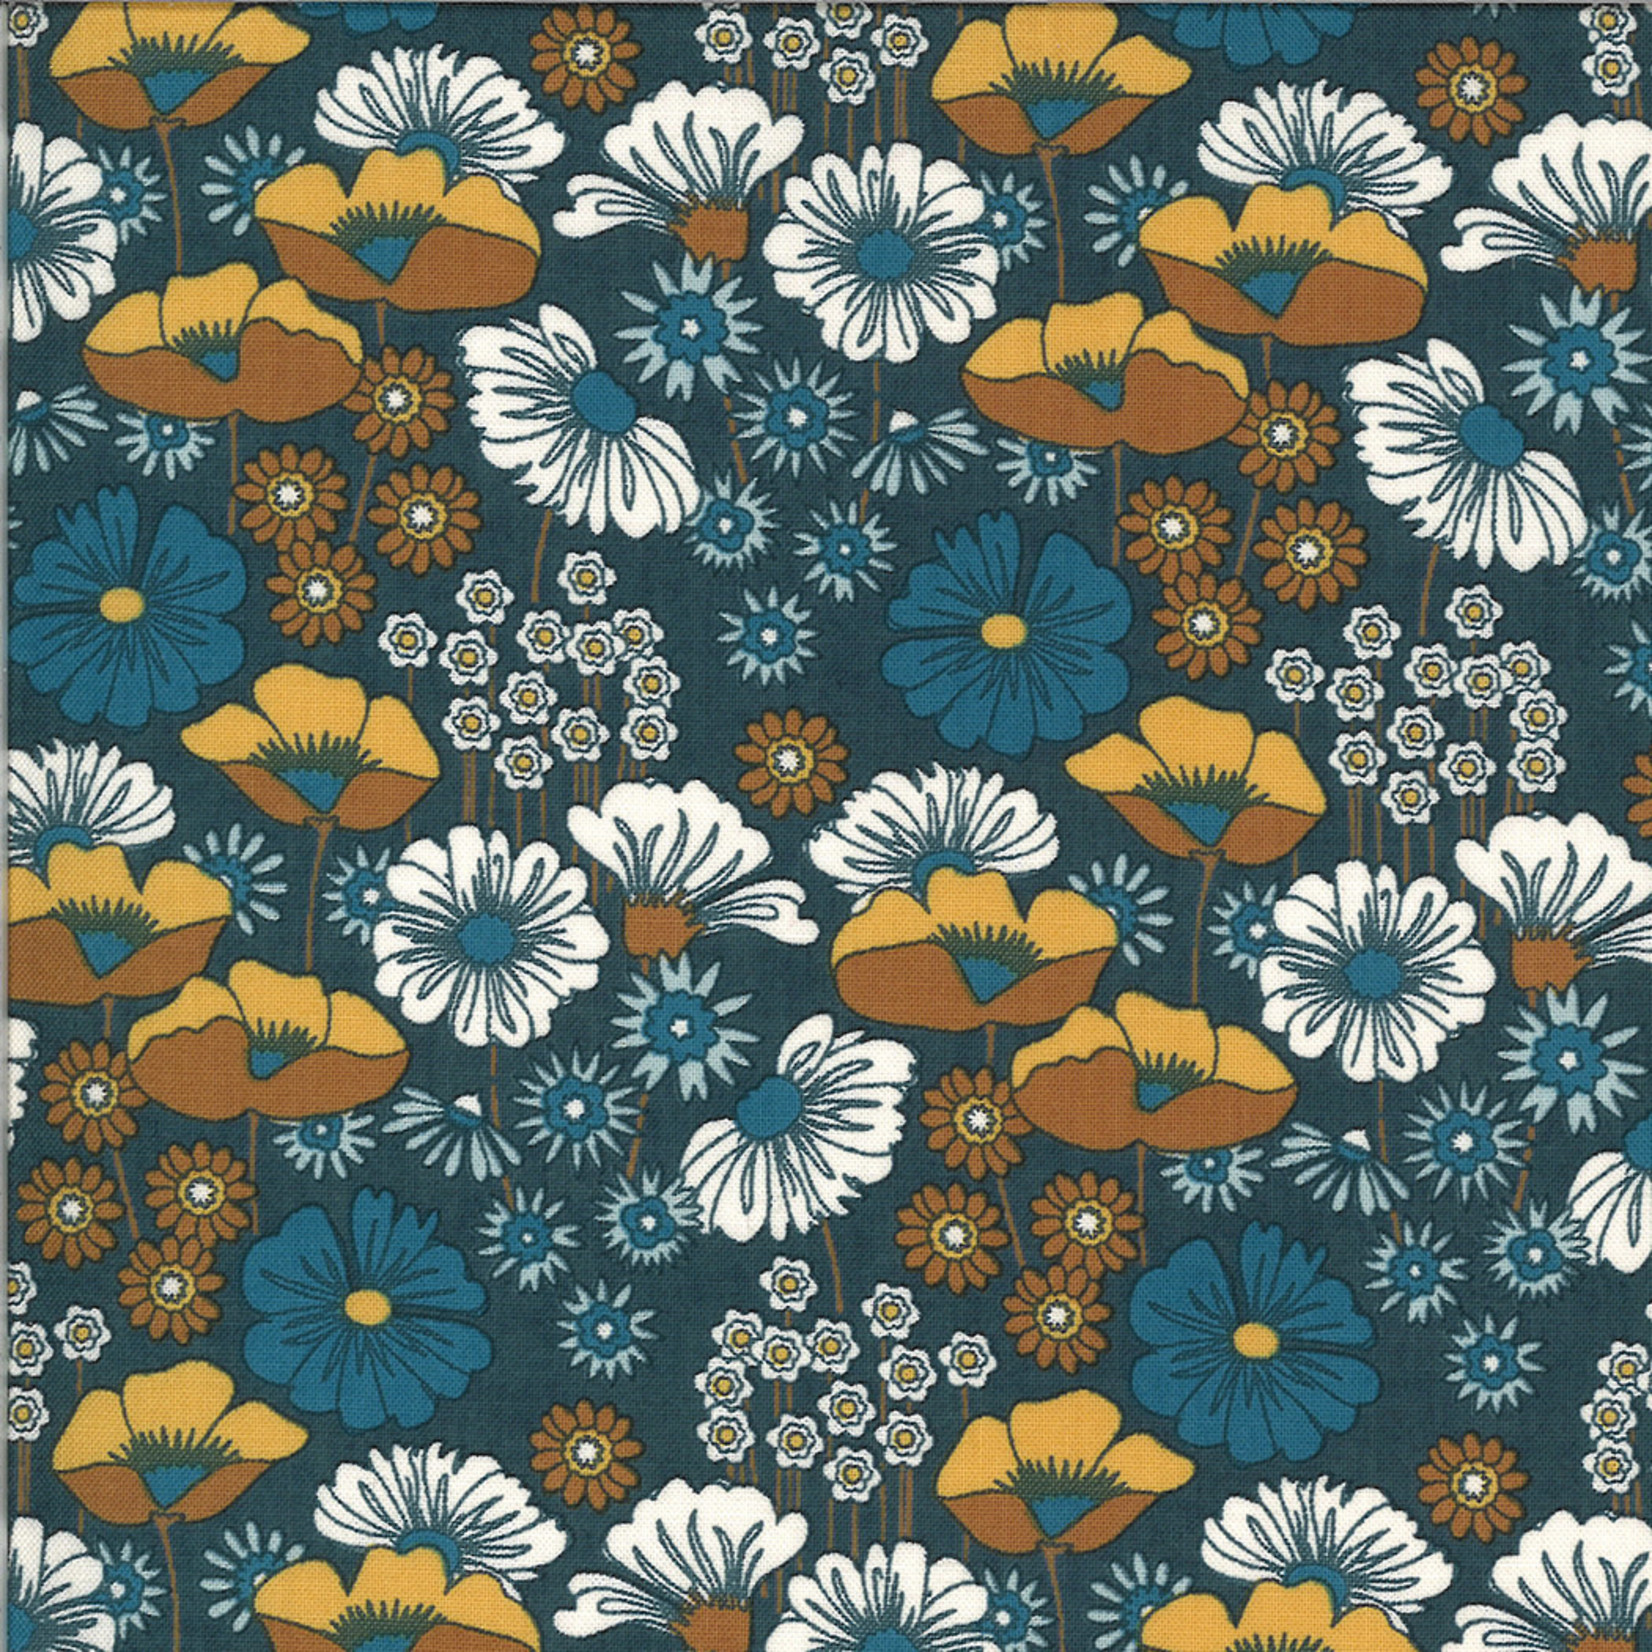 MODA Cider, Blue and Brown Poppies Blue Blueberry Buckle (30640 20) per cm or $20/m